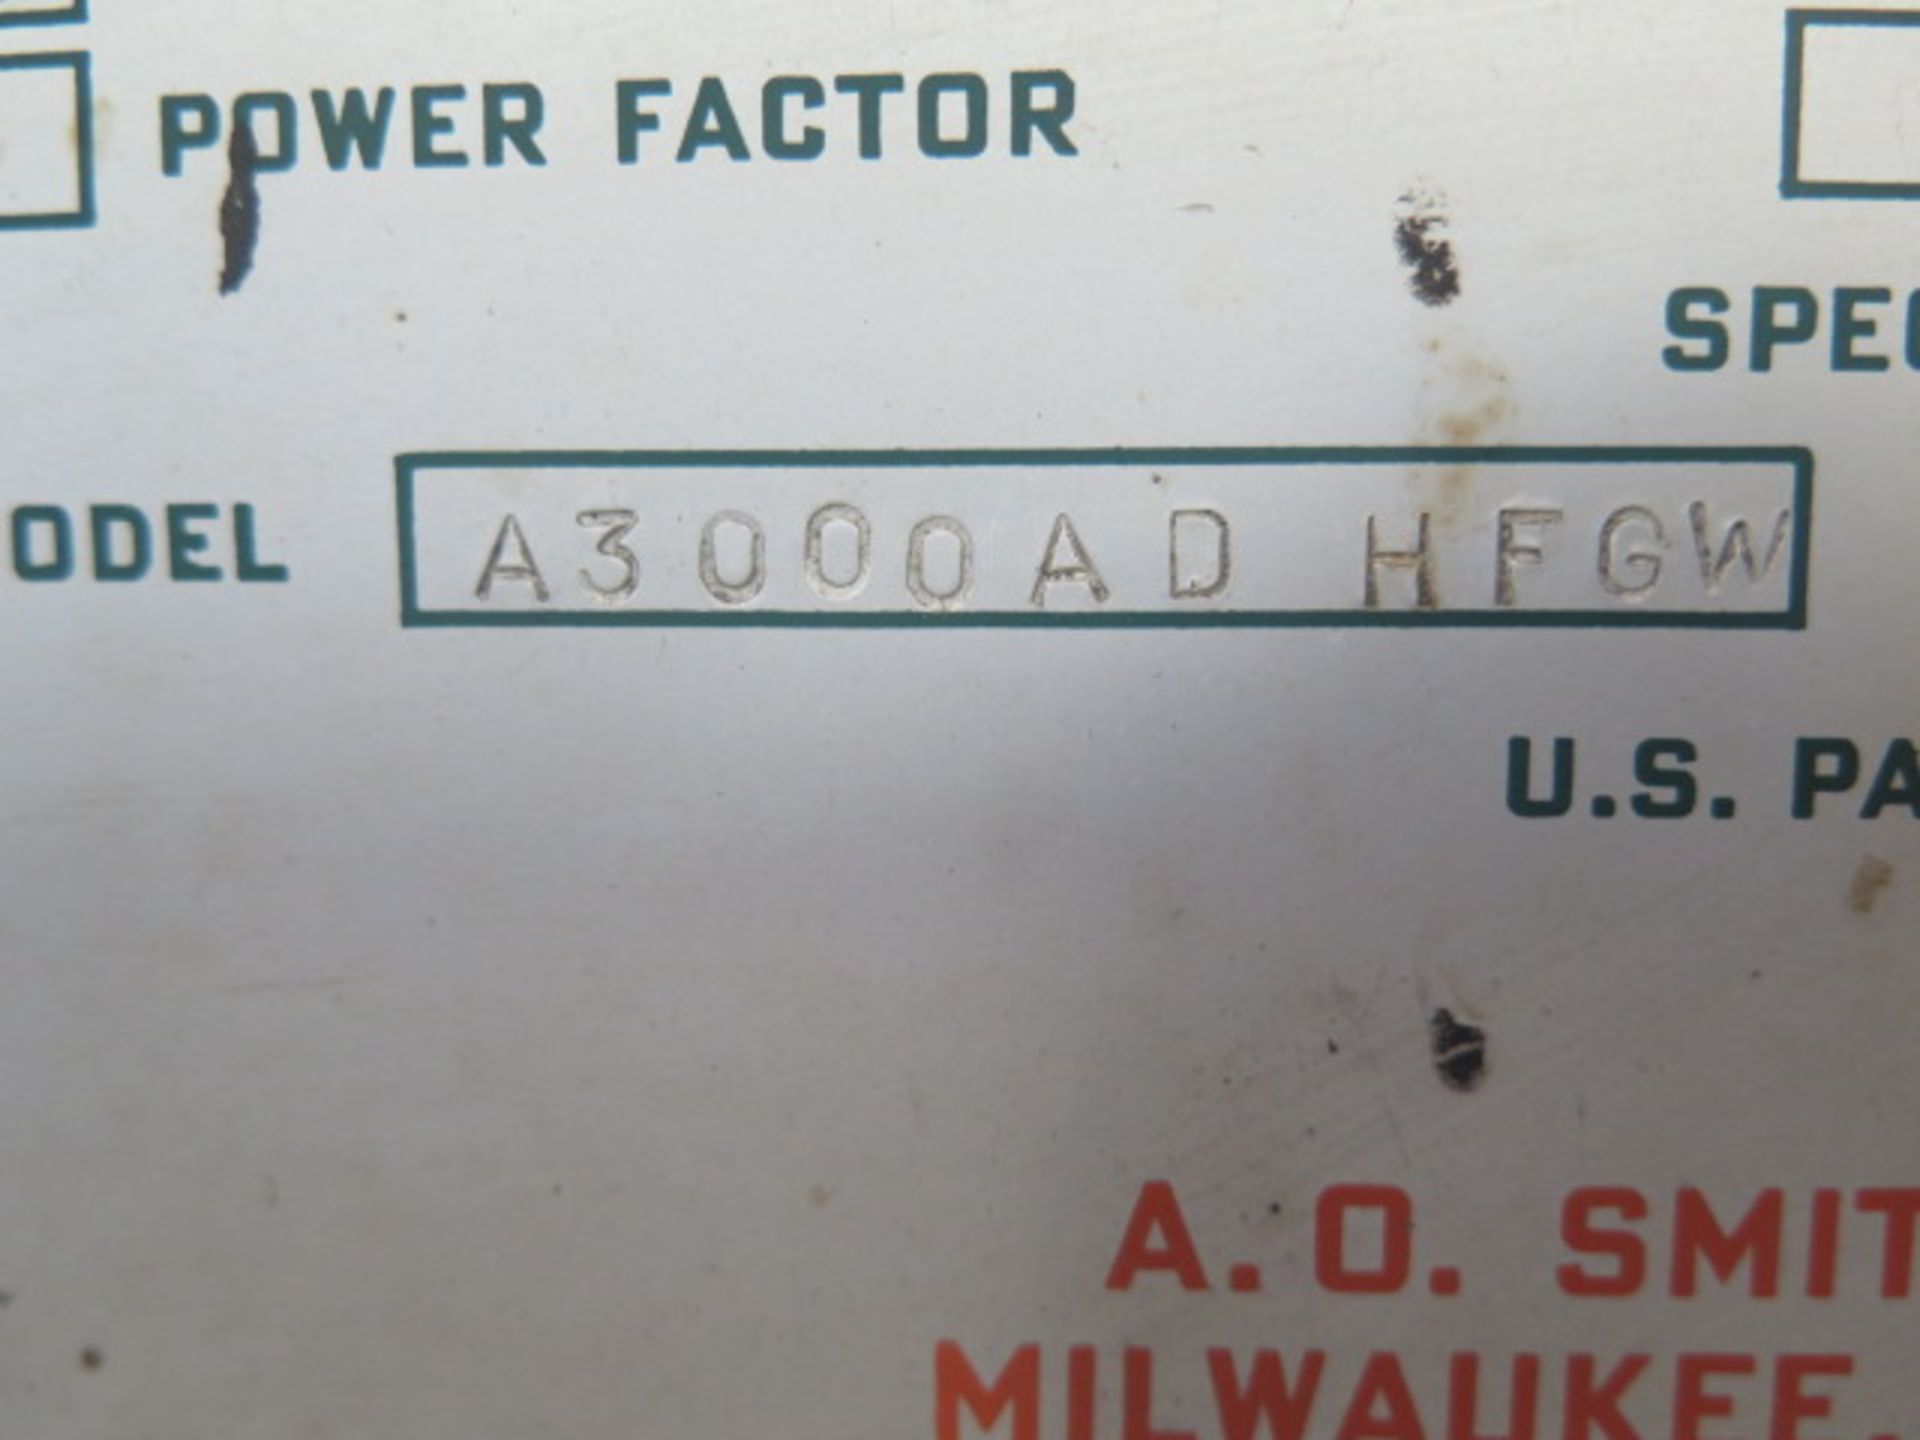 AO Smith A3000AD AFGW AC/DC Arc Welding Power Source s/n 1453-6043-8 (SOLD AS-IS - NO WARRANTY) - Image 7 of 8